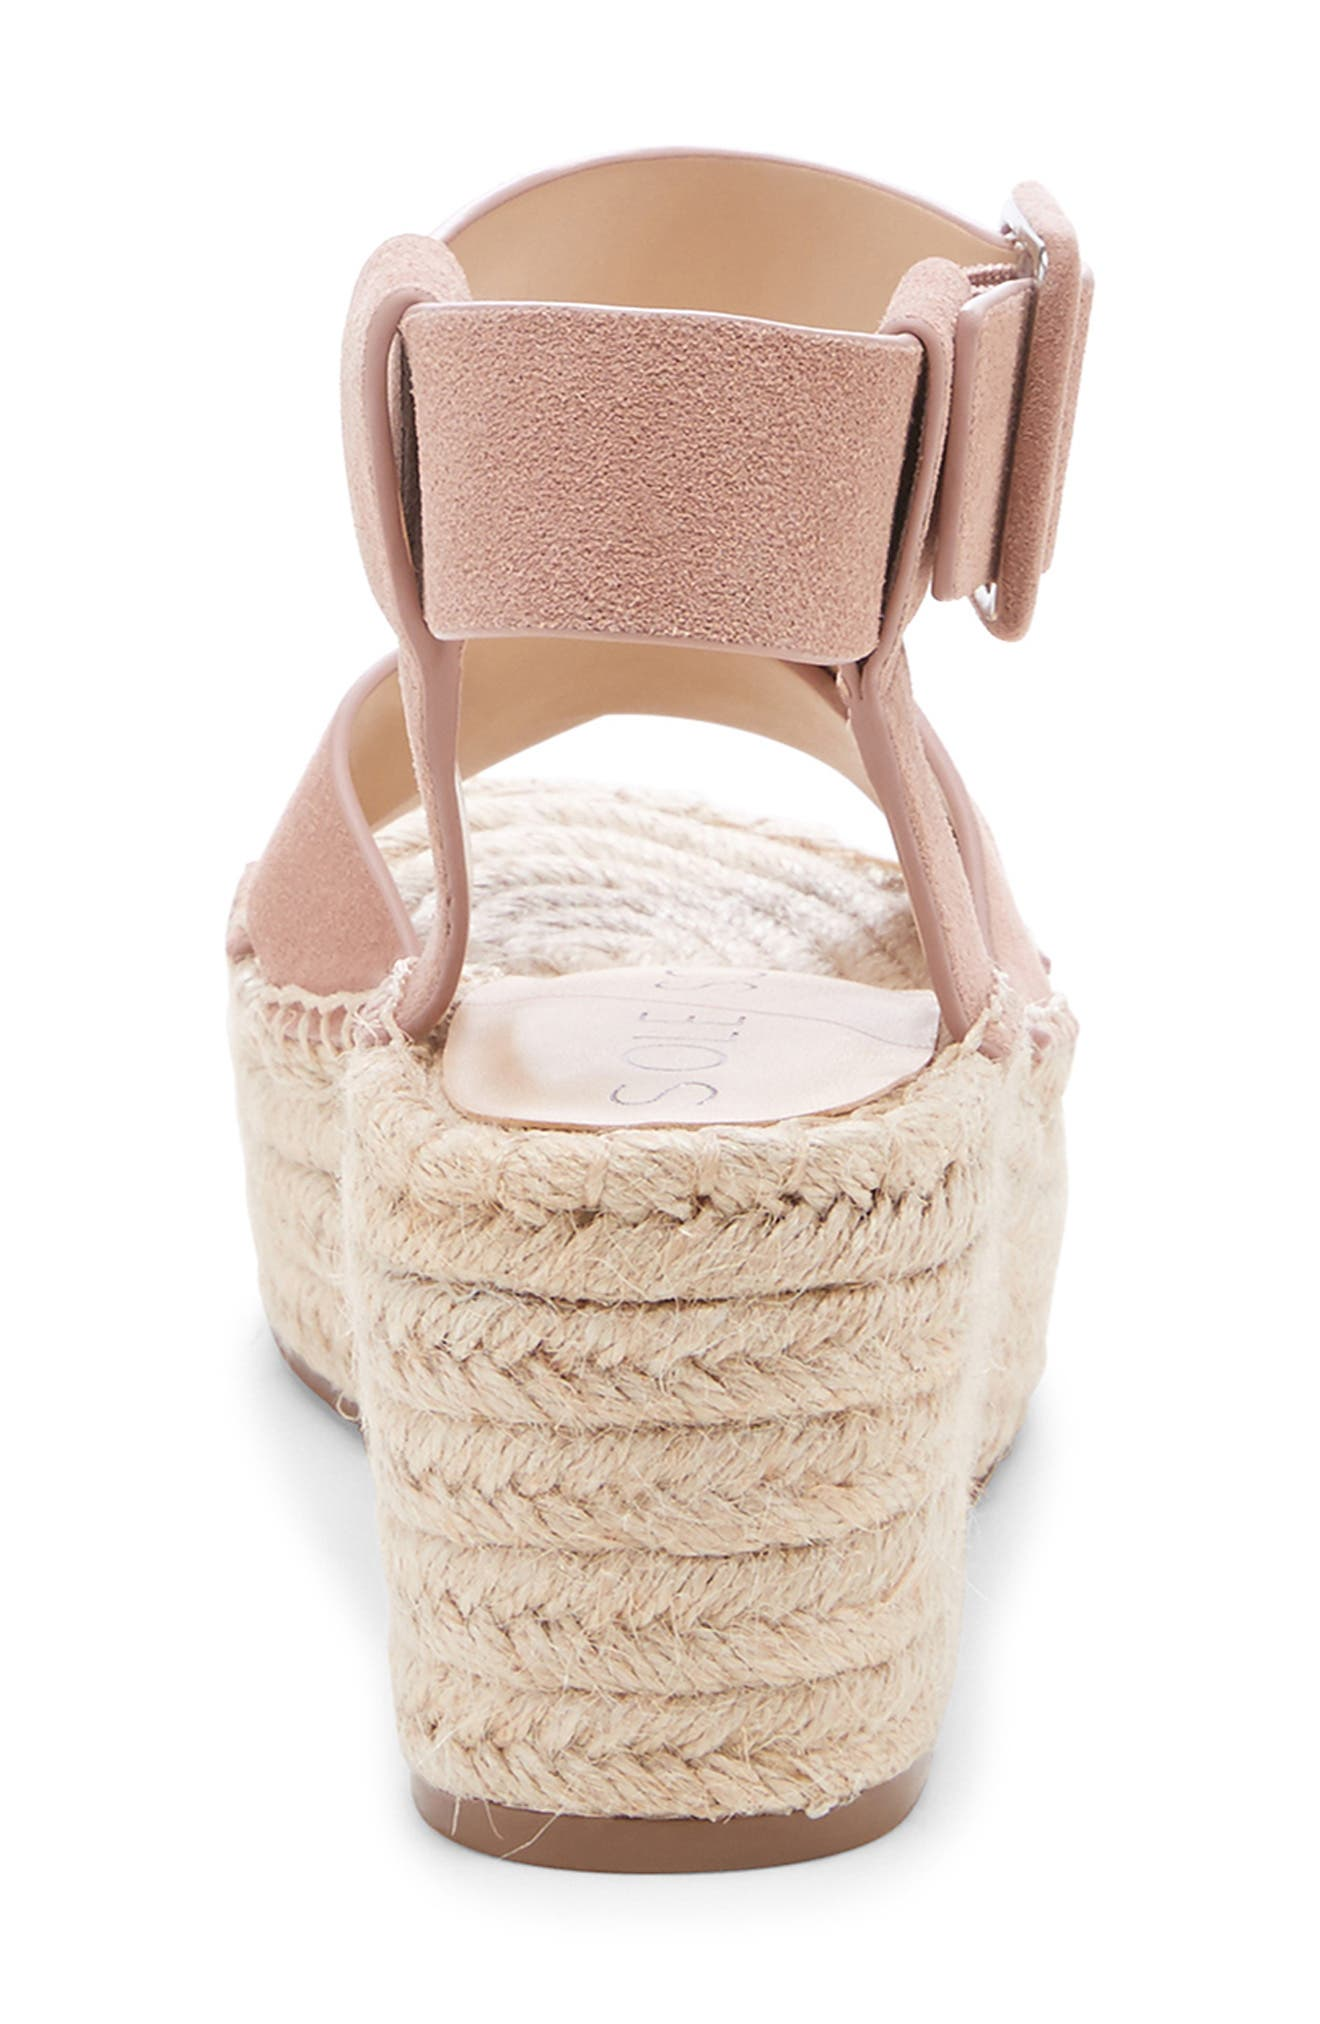 SOLE SOCIETY, Audrina Platform Espadrille Sandal, Alternate thumbnail 7, color, DUSTY ROSE SUEDE